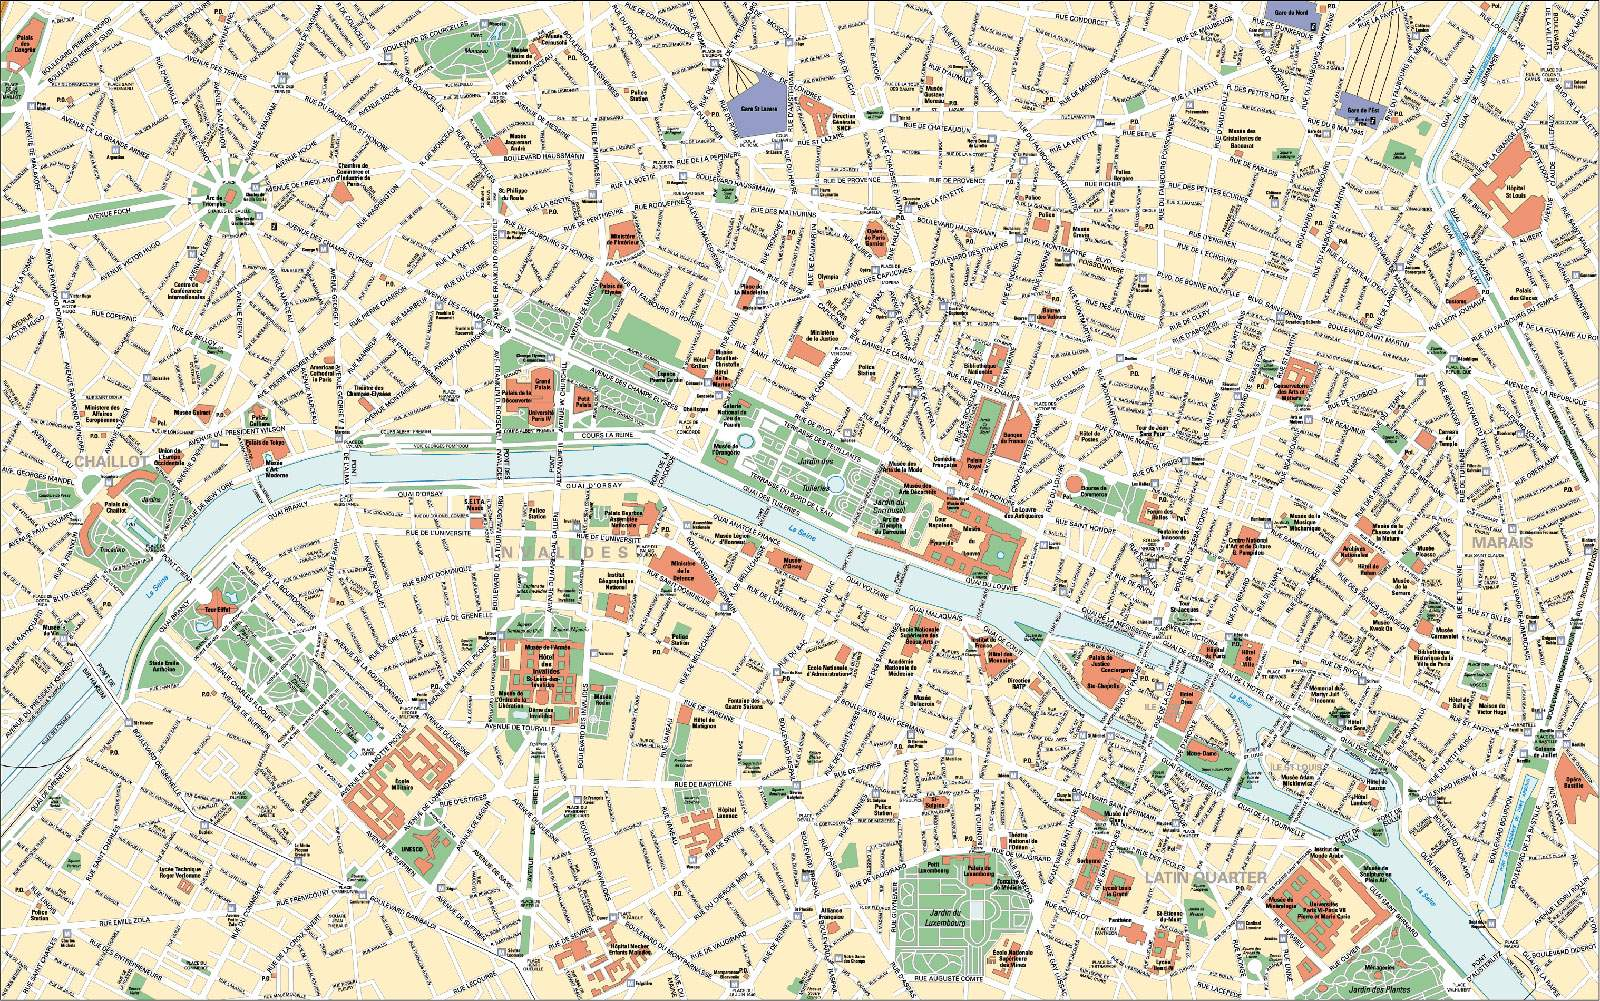 Large Paris Maps For Free Download And Print High Resolution And Detailed Maps